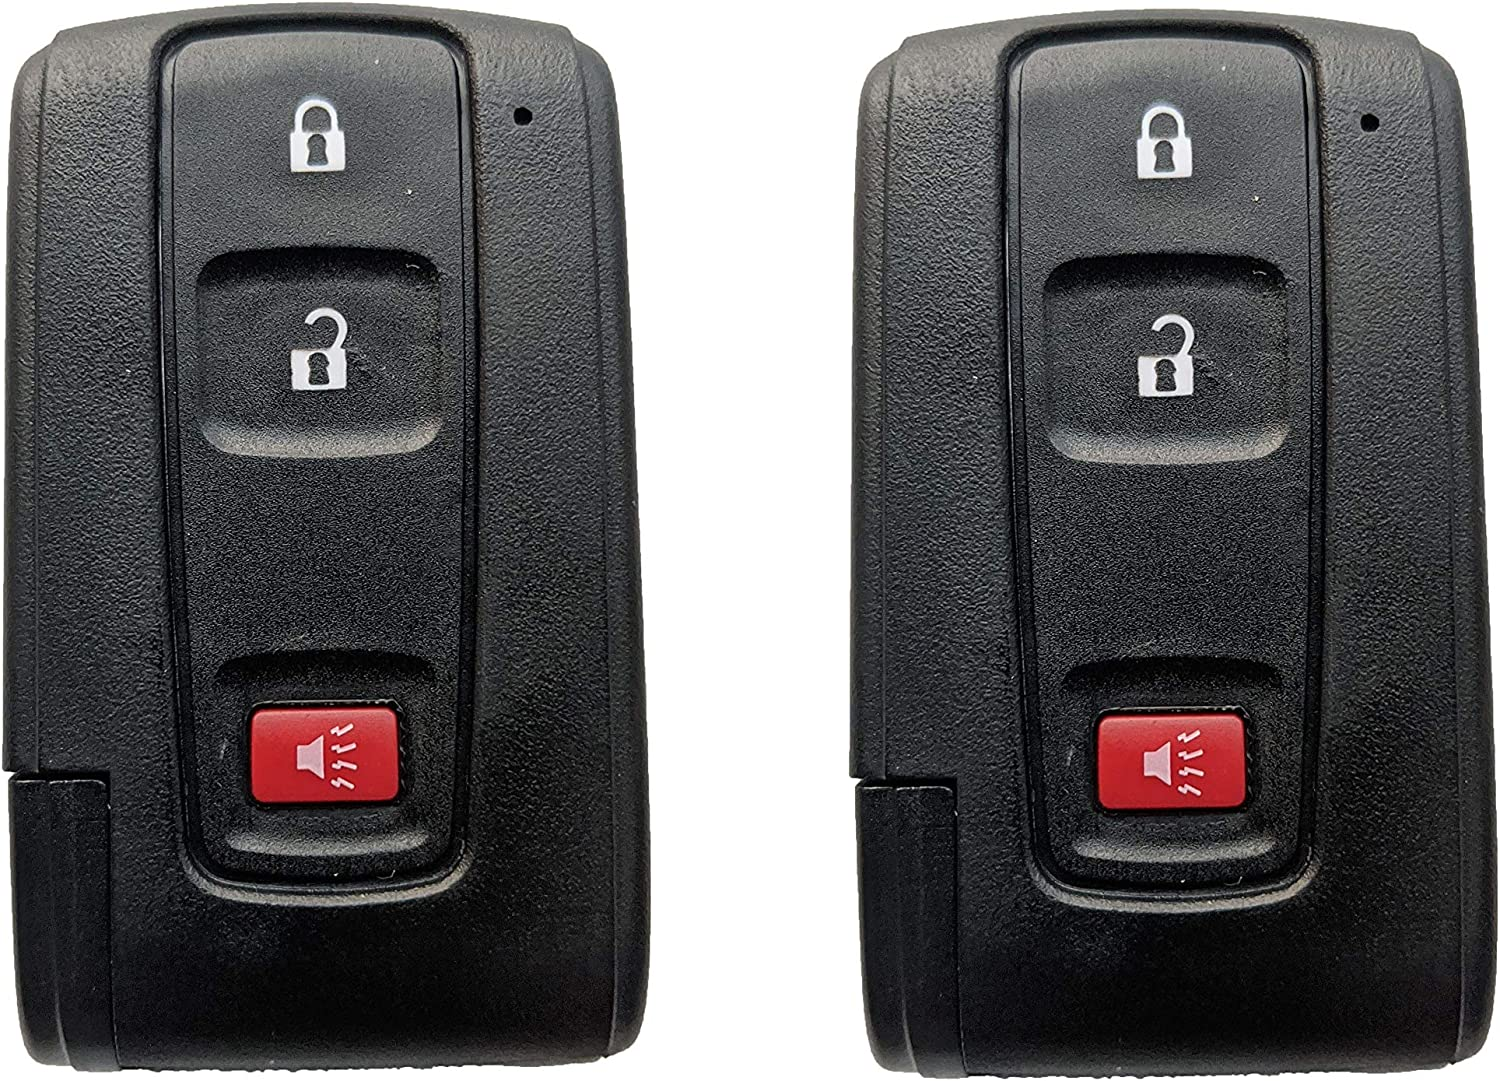 Remote Key Fob Shell Case With Blank Key fit Toyota Prius 2004 2005 2006 2007 2008 2009 2 Pack